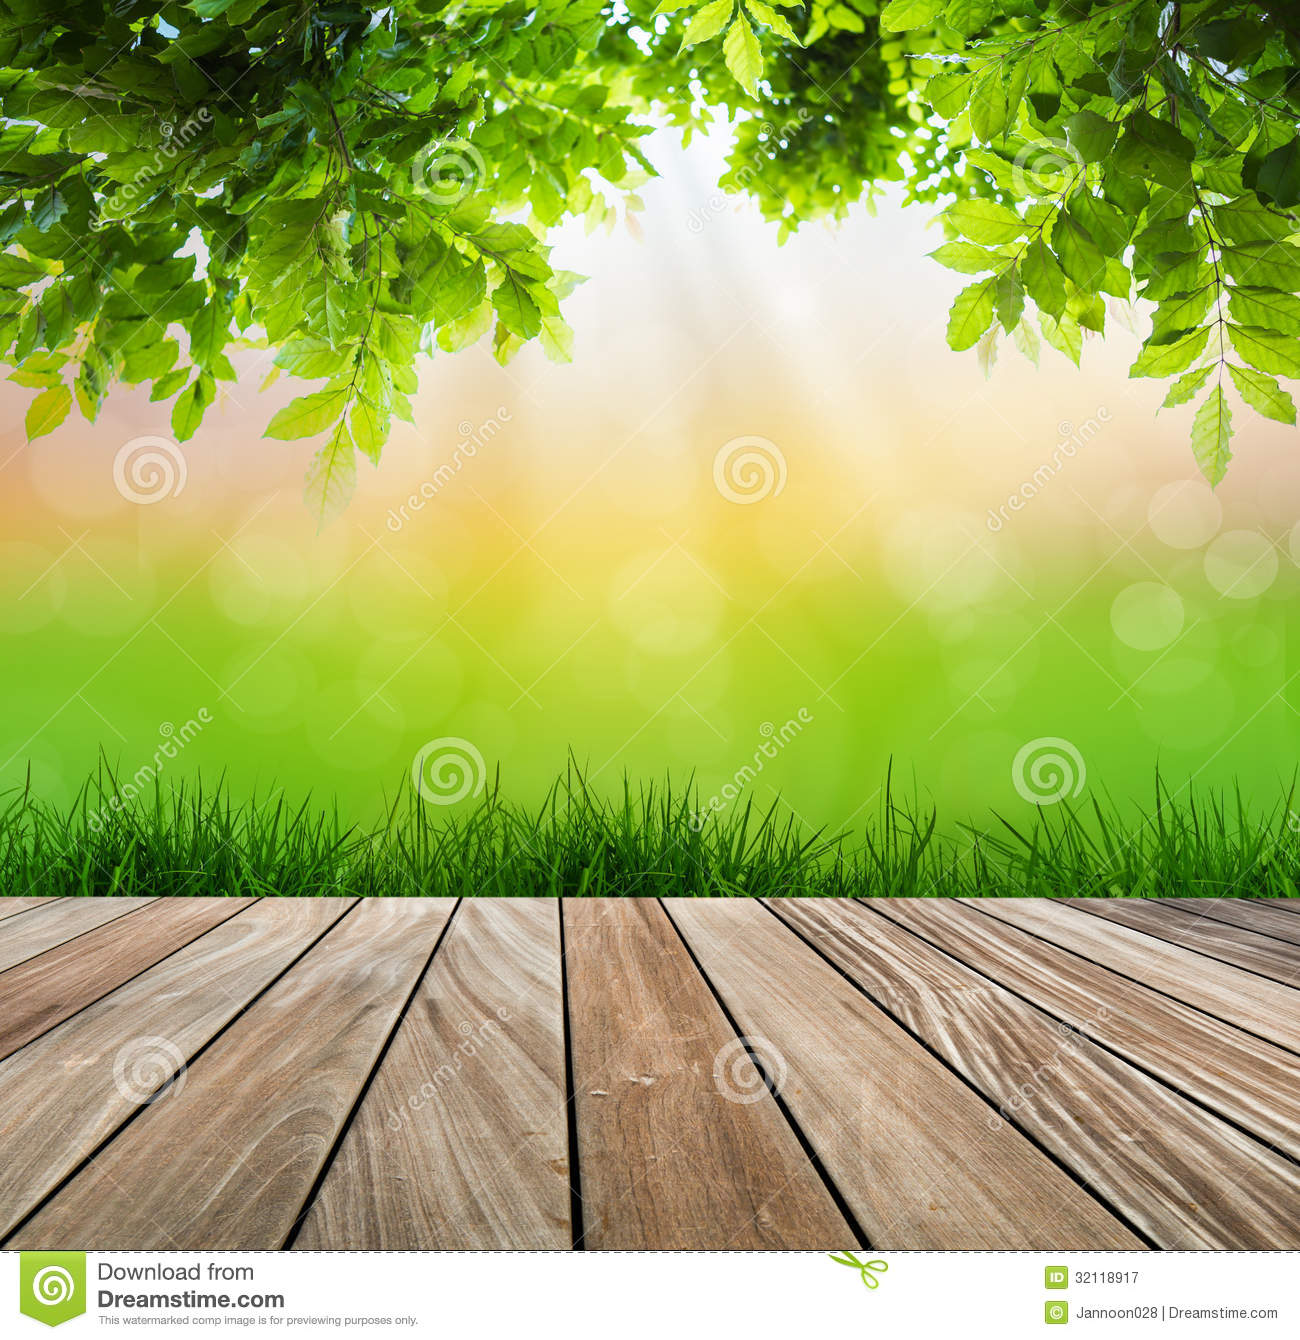 Green Floor grass with green blurred background and wood floor stock photo